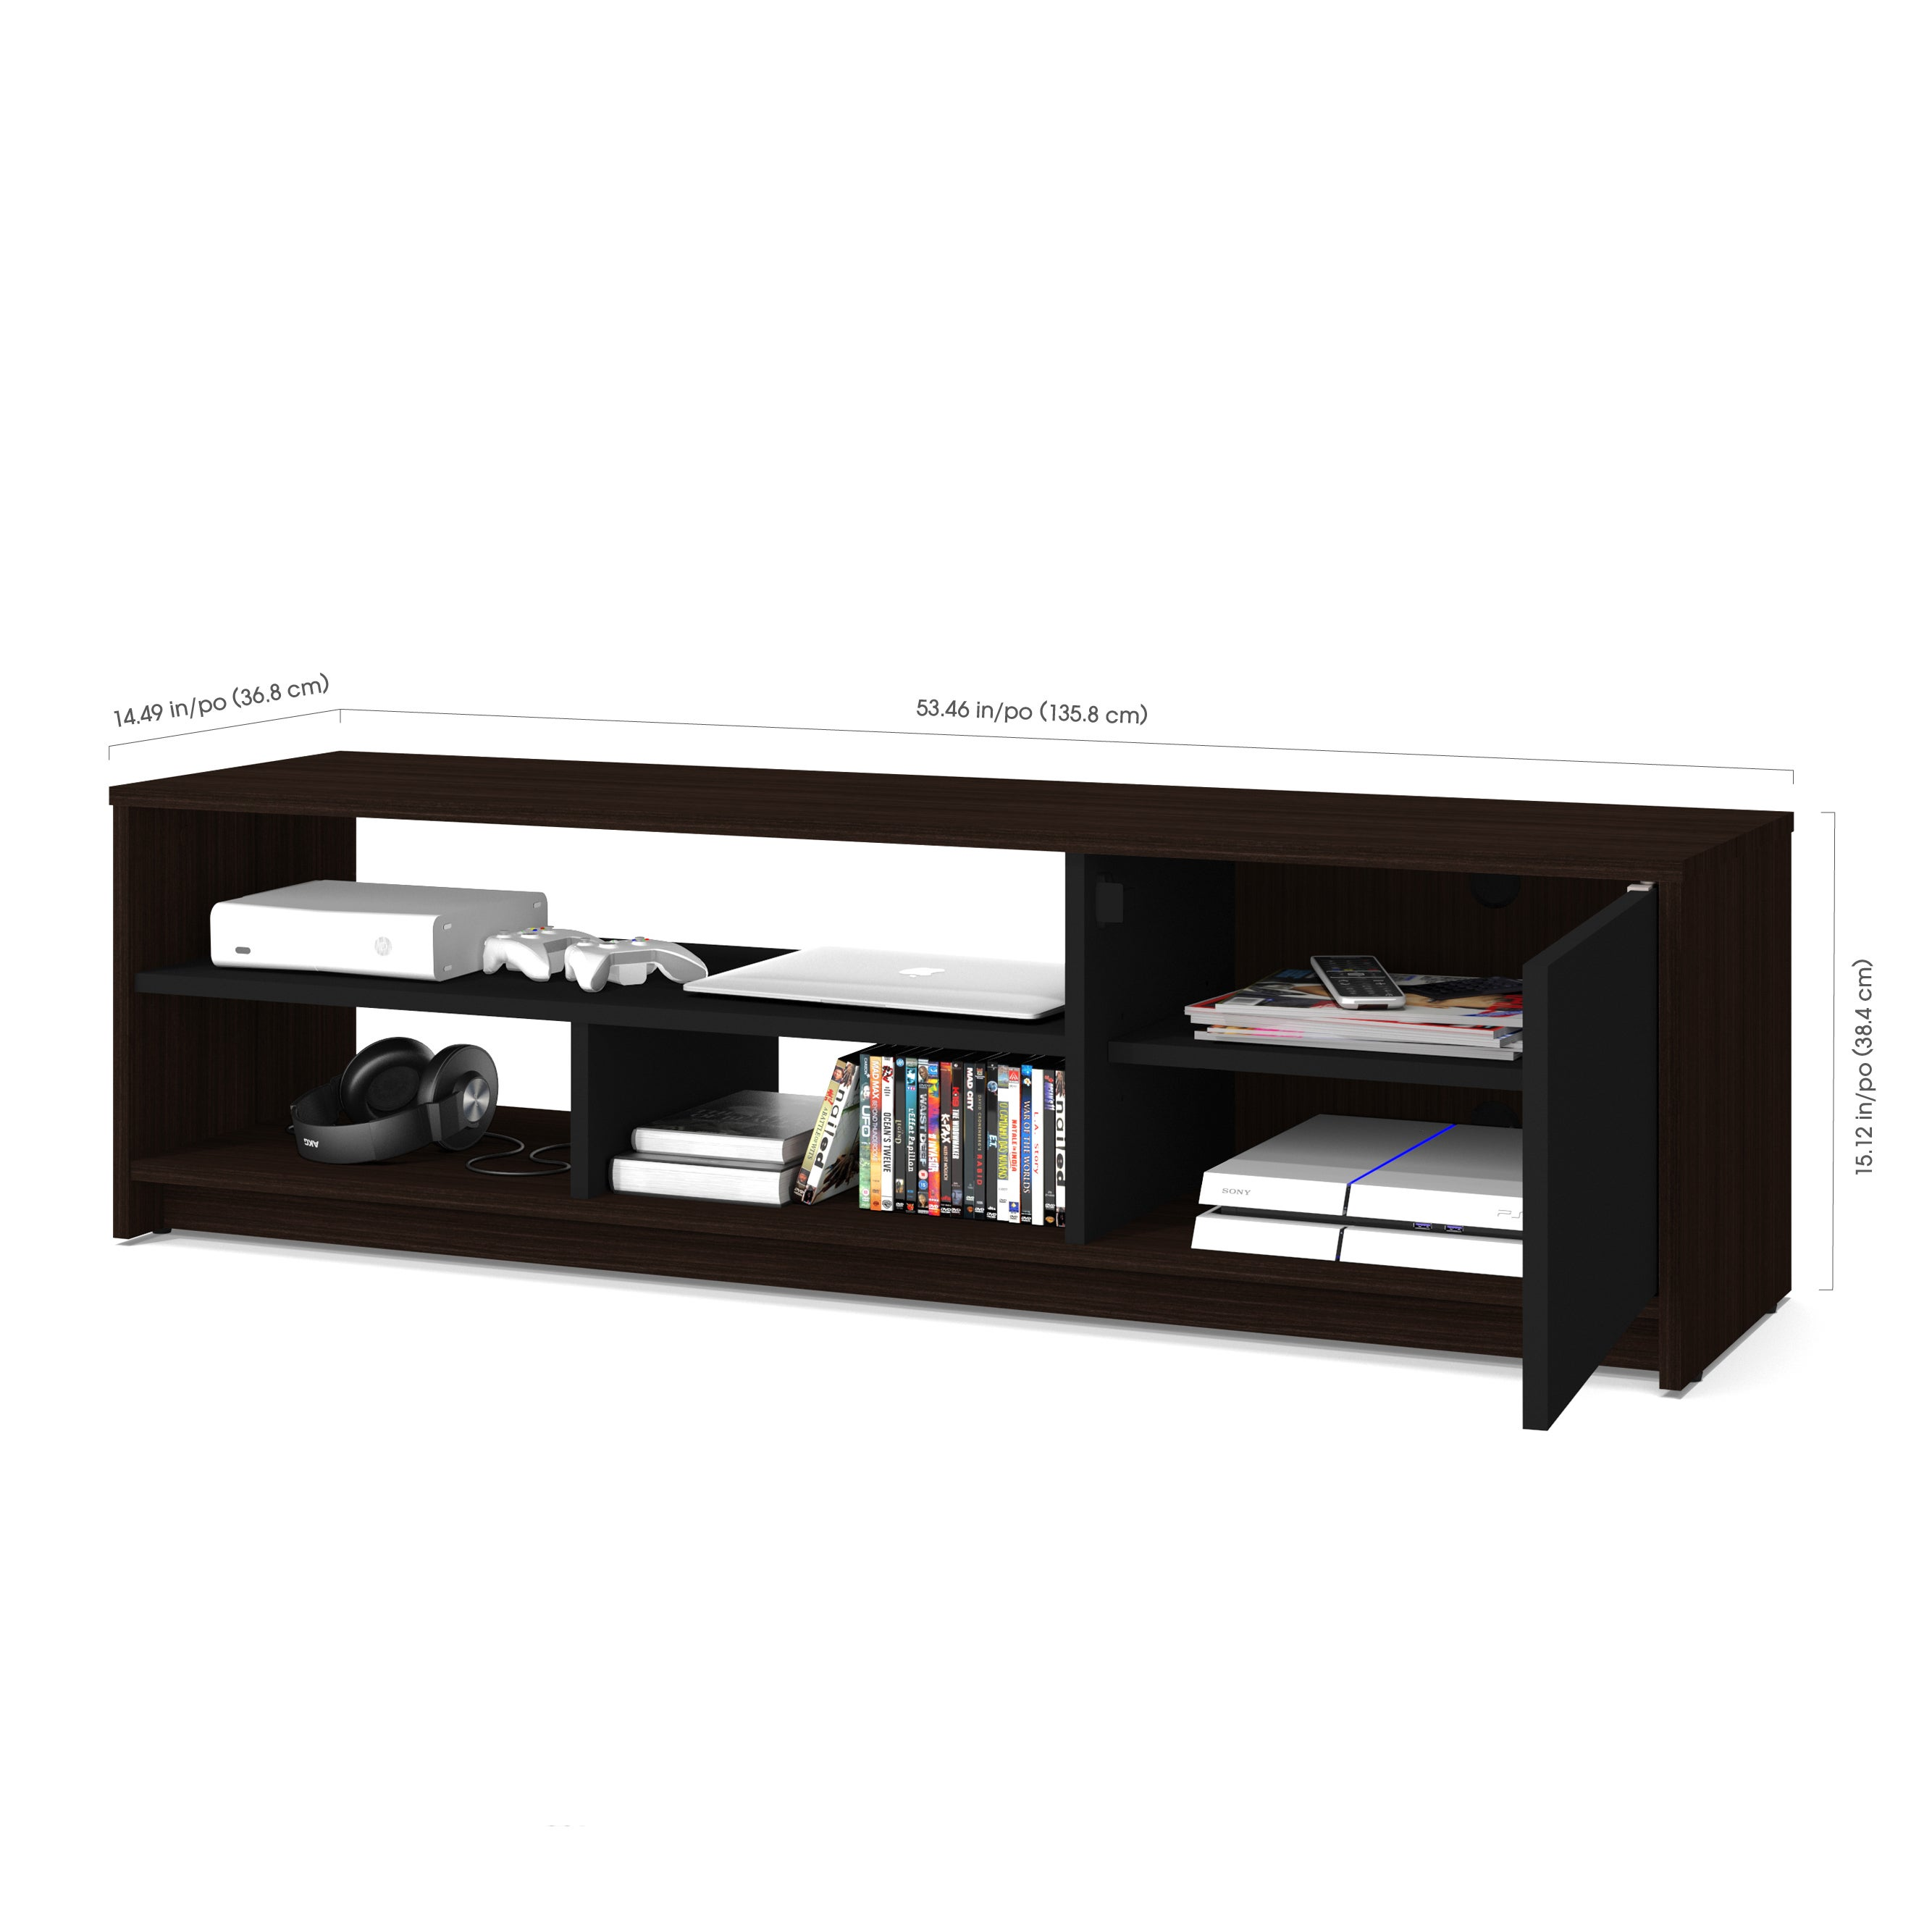 Bestar Small Space 53 5 inch TV Stand Free Shipping Today